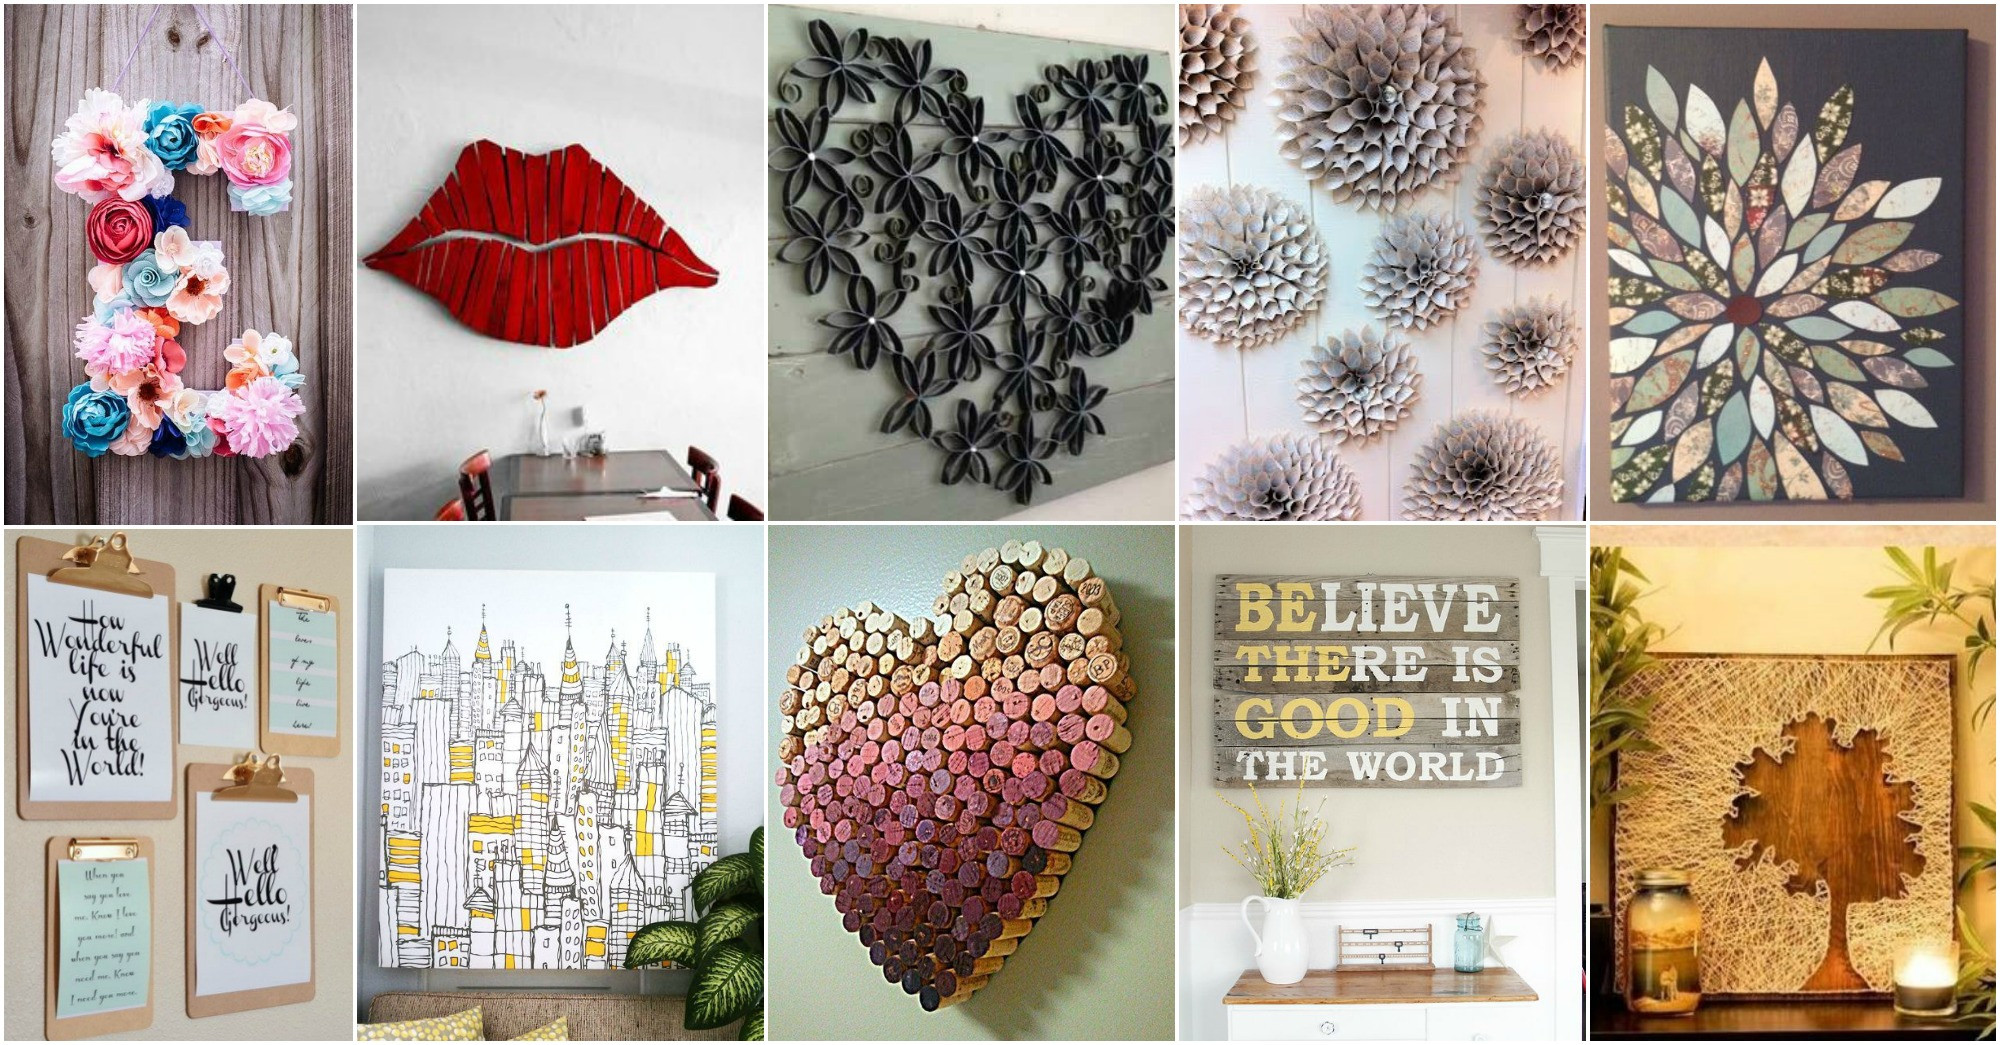 Best ideas about Wall Decors DIY . Save or Pin 20 DIY Innovative Wall Art Decor Ideas That Will Leave You Now.